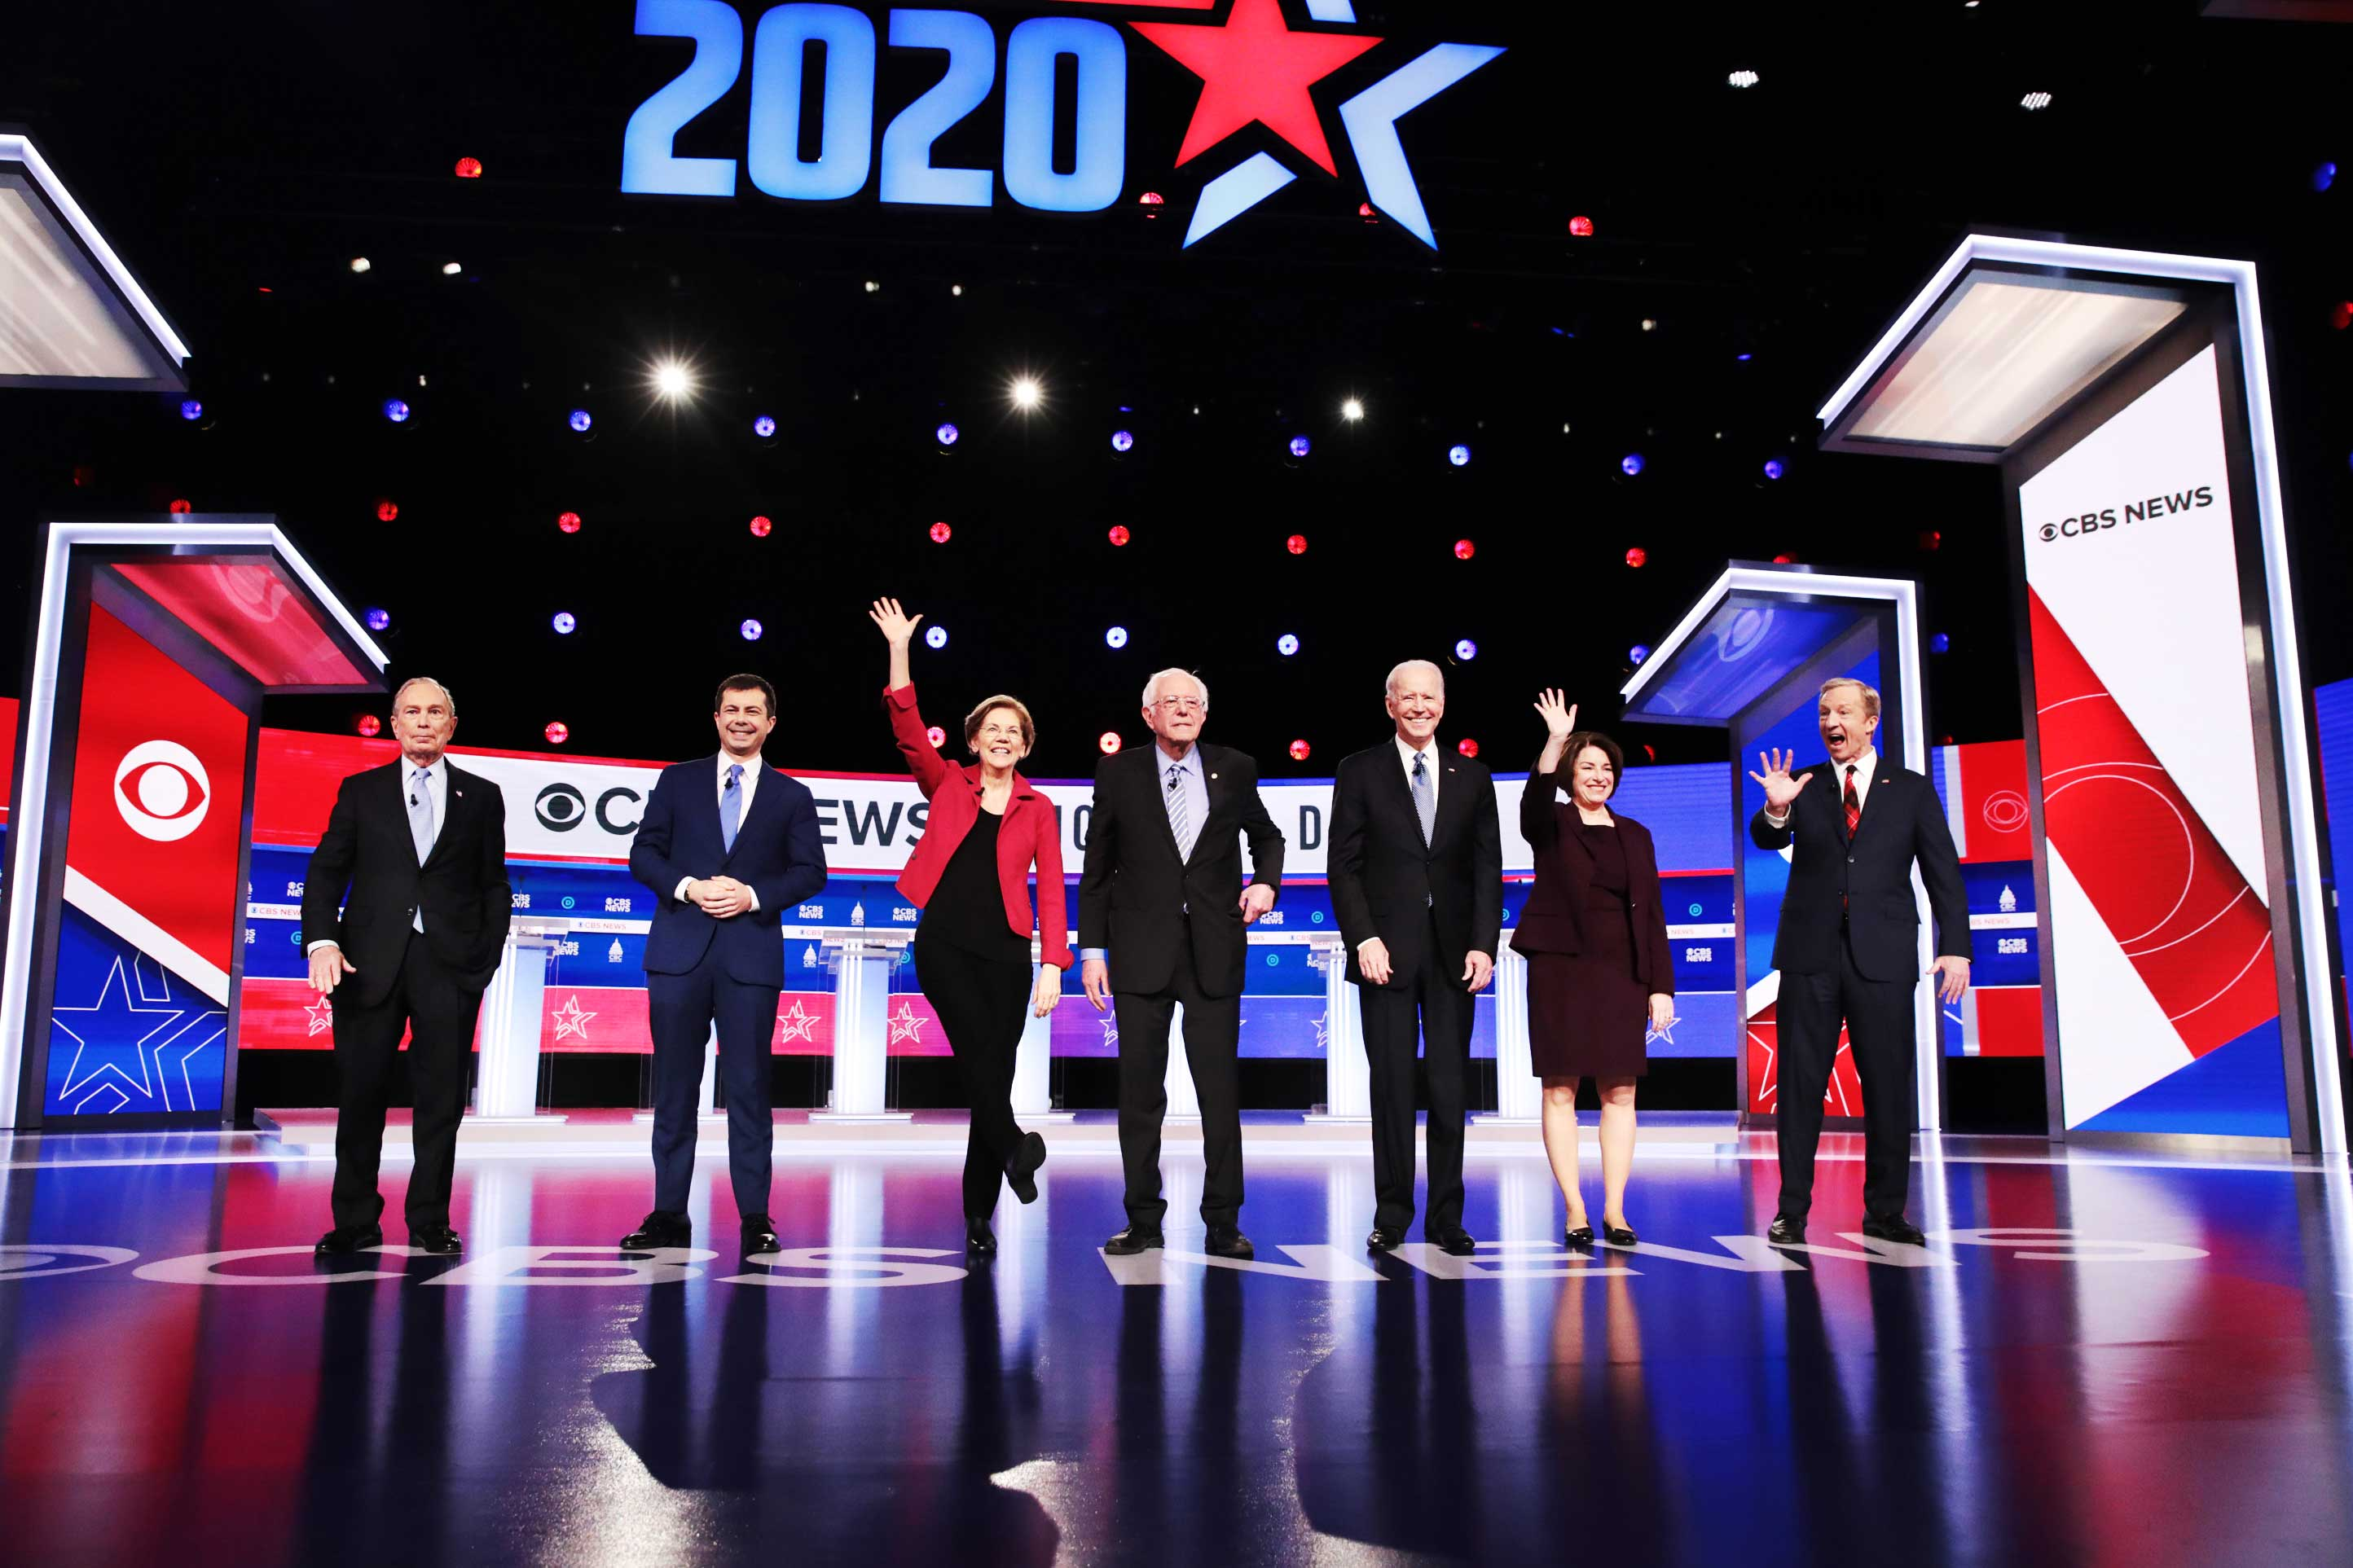 4 winners and 2 losers from the Democratic debate in South Carolina